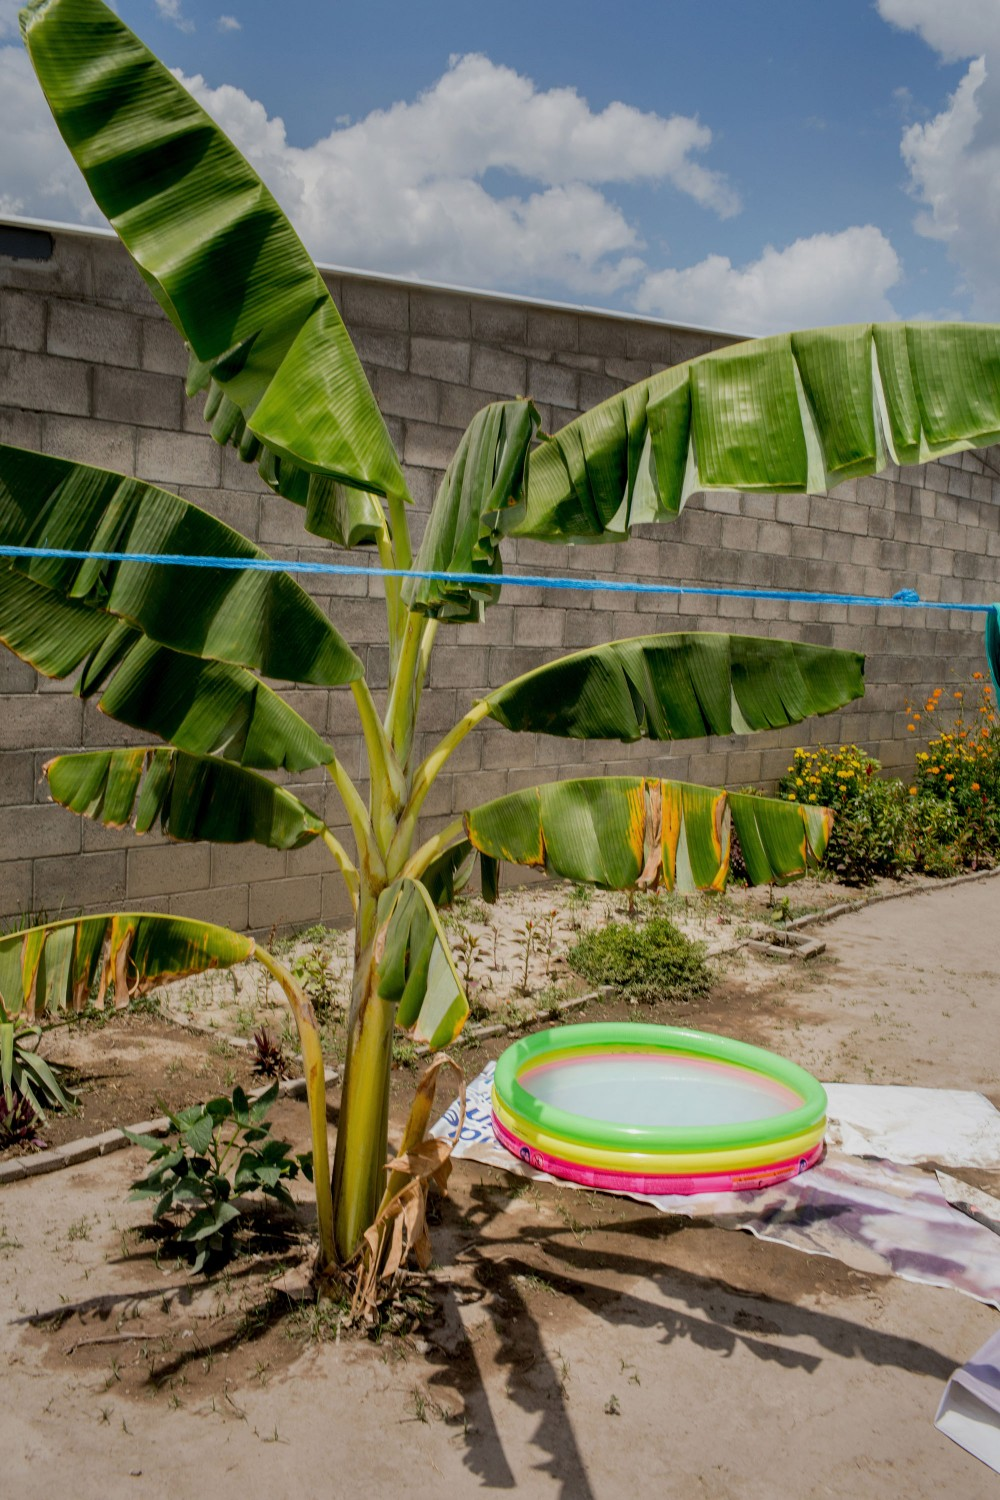 April 2017, El Salvador, San Salvador. A baby pool in the heat of the day in Tonacatapeque San Salvador. (Natalie Keyssar)